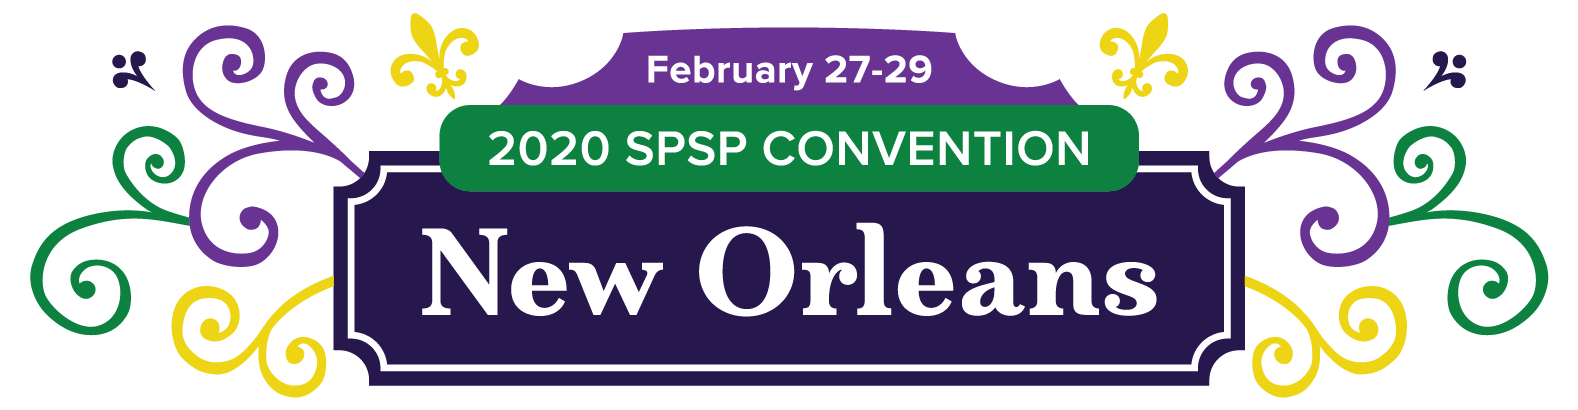 SPSP 2020 Annual Convention in New Orleans logo